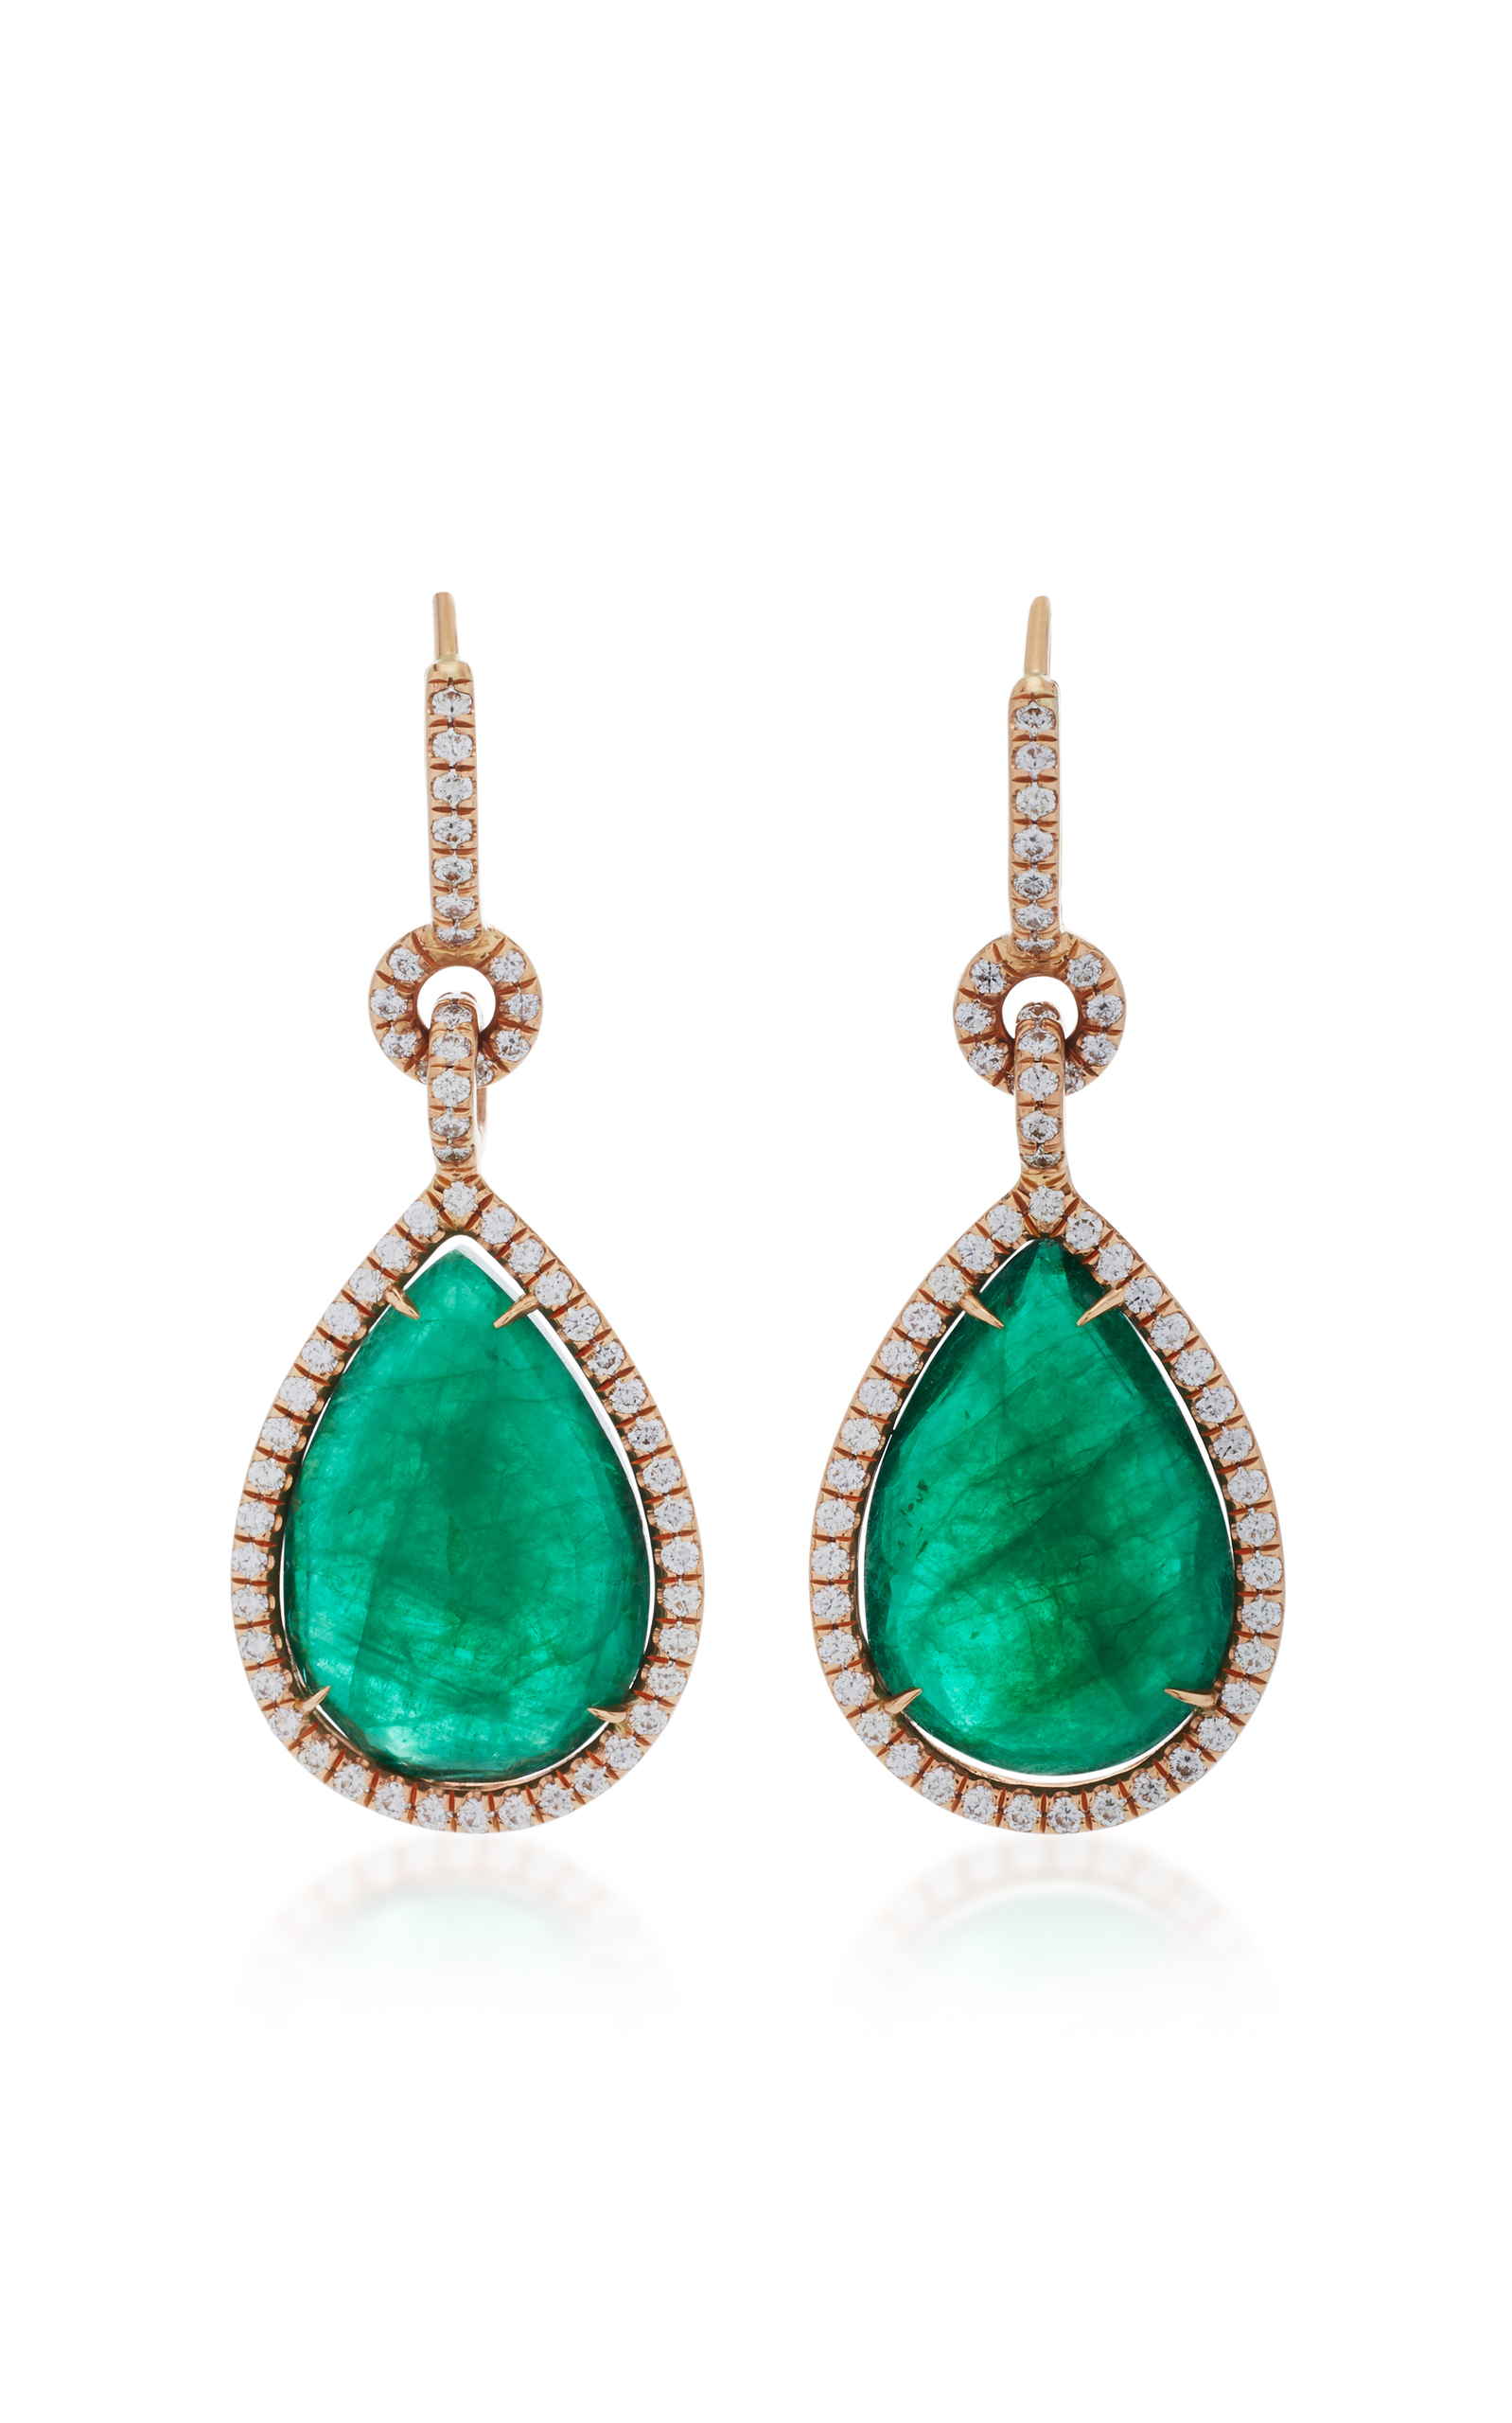 18K Rose Gold Emerald and Diamond Drop Earrings by Nina Runsdorf